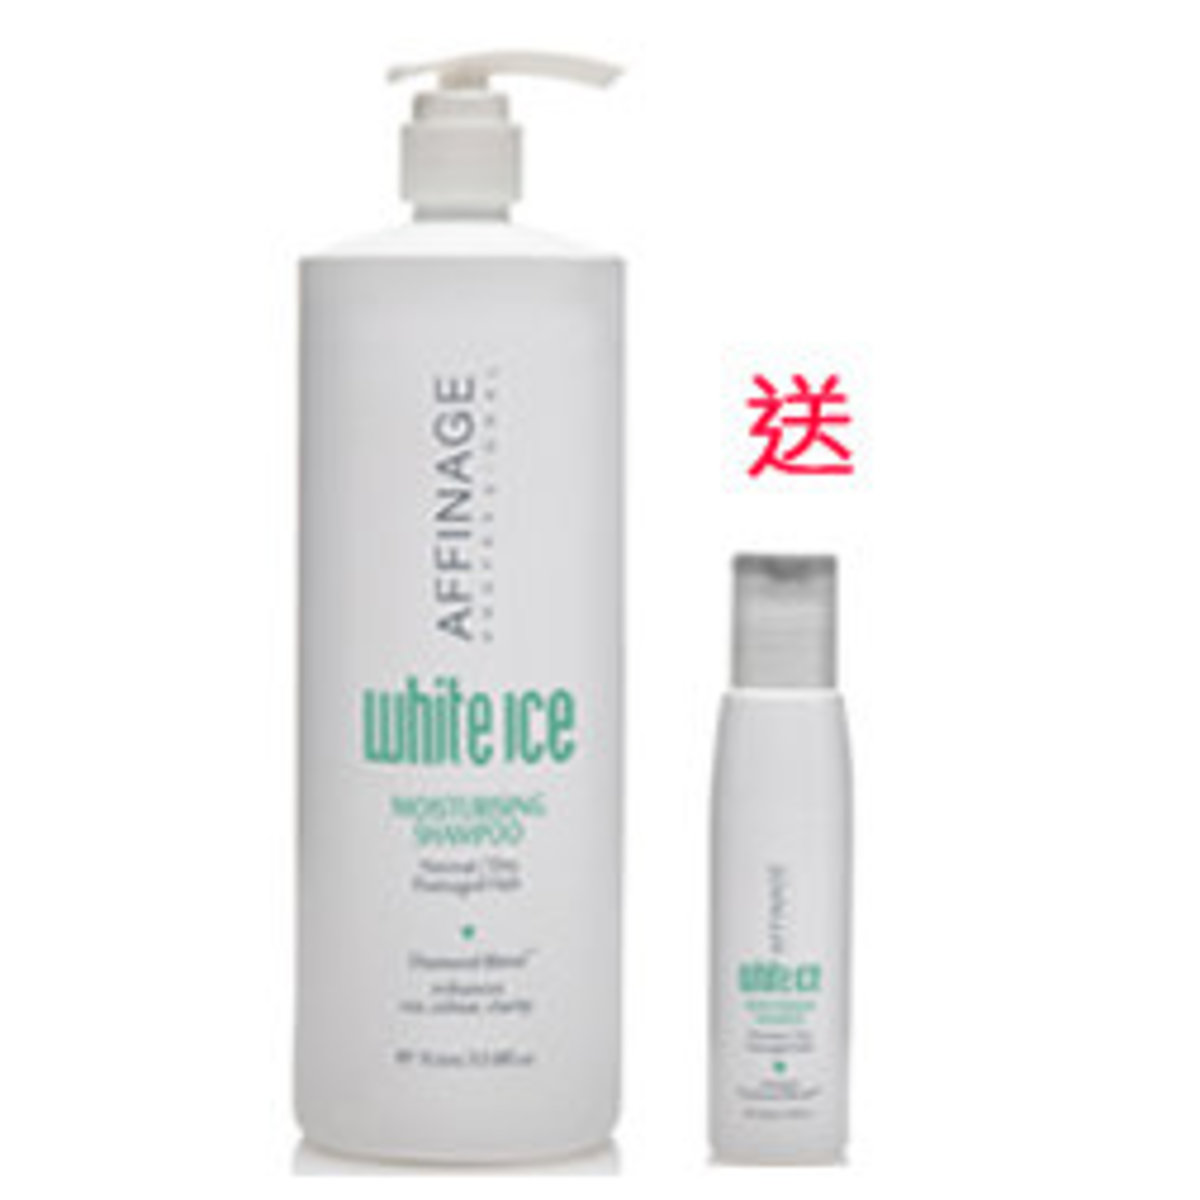 White Ice Moist Shampoo 1000ml Free 100ml Trial Size